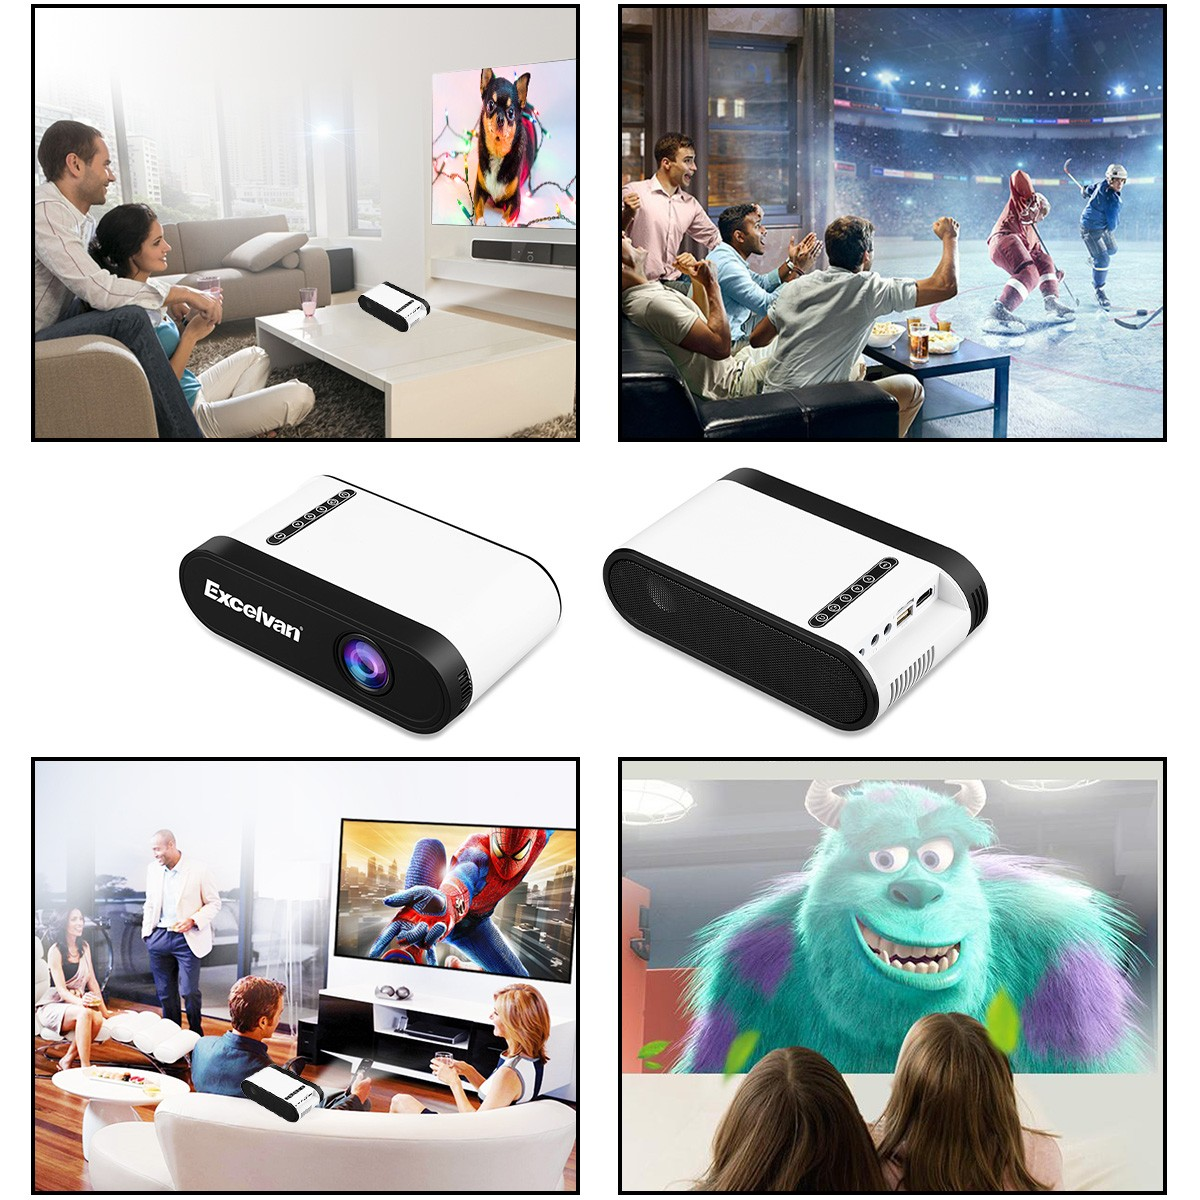 Excelvan P7 Mini Portable Multimedia Led Projector With Hdmi Usb Av Home Theater Wiring Diagram Furthermore Tf Interfaces Support 1080p For